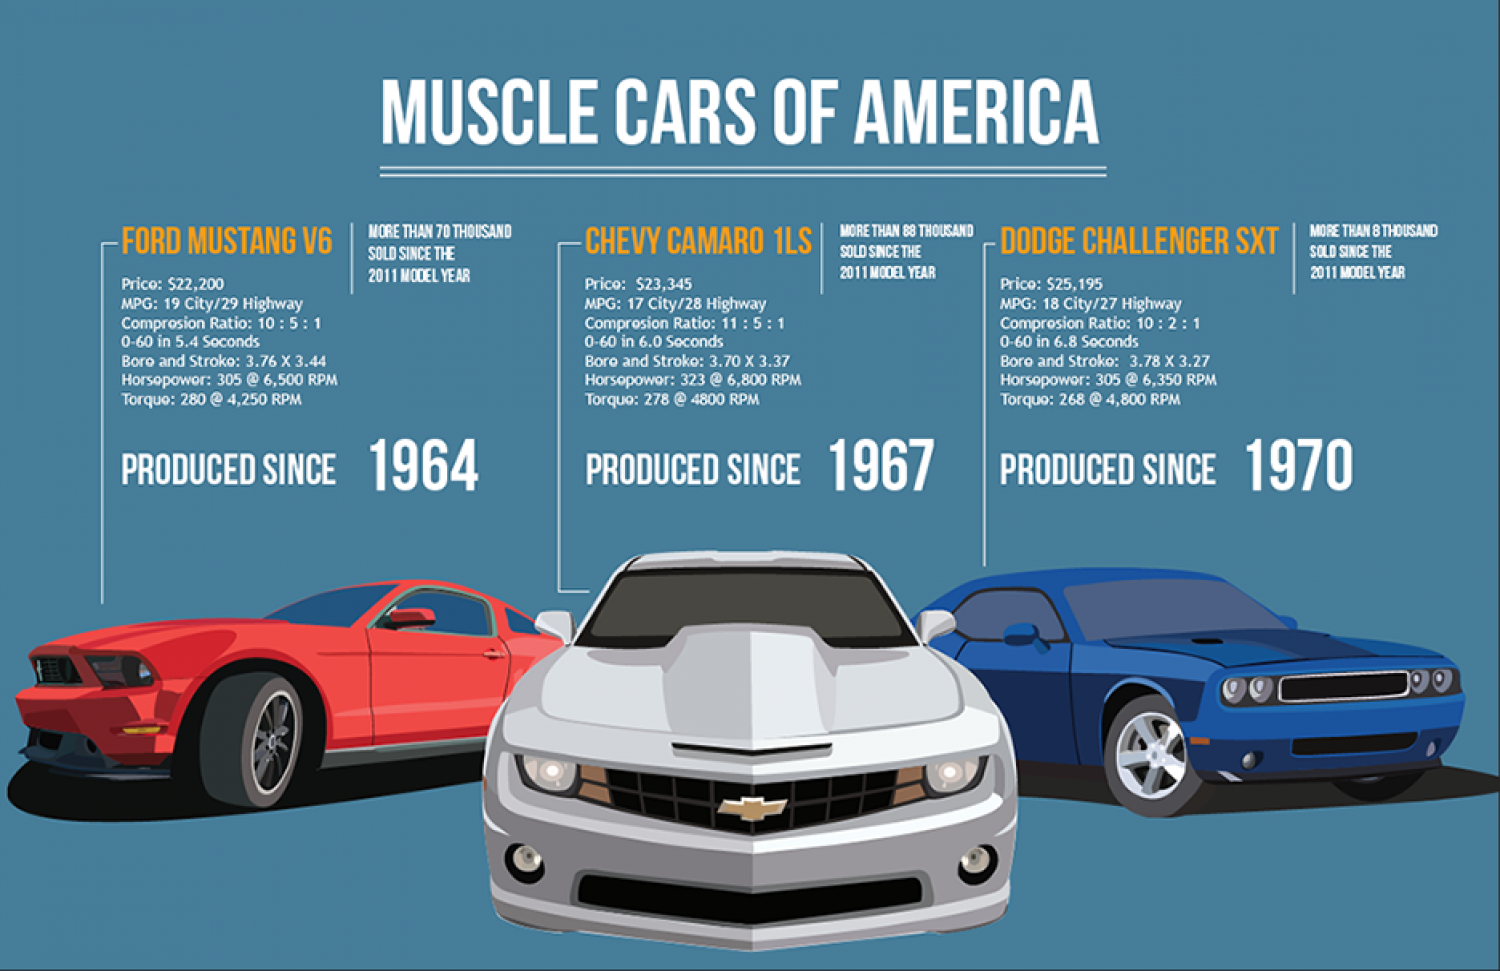 Top 3 Muscle Cars of America Infographic